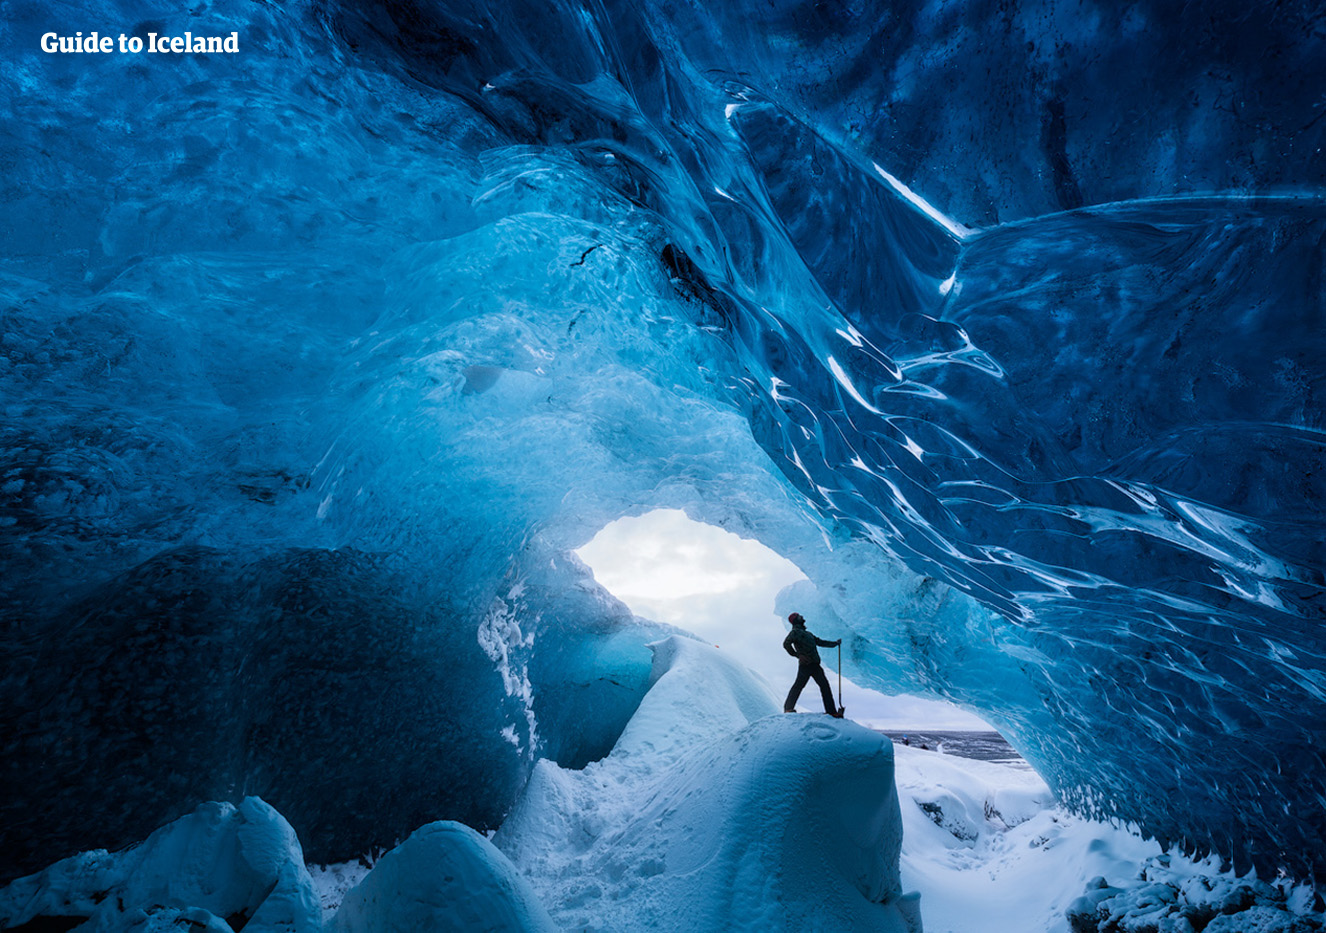 Going into an ice cave is one of the most memorable experiences available to those visiting Iceland.